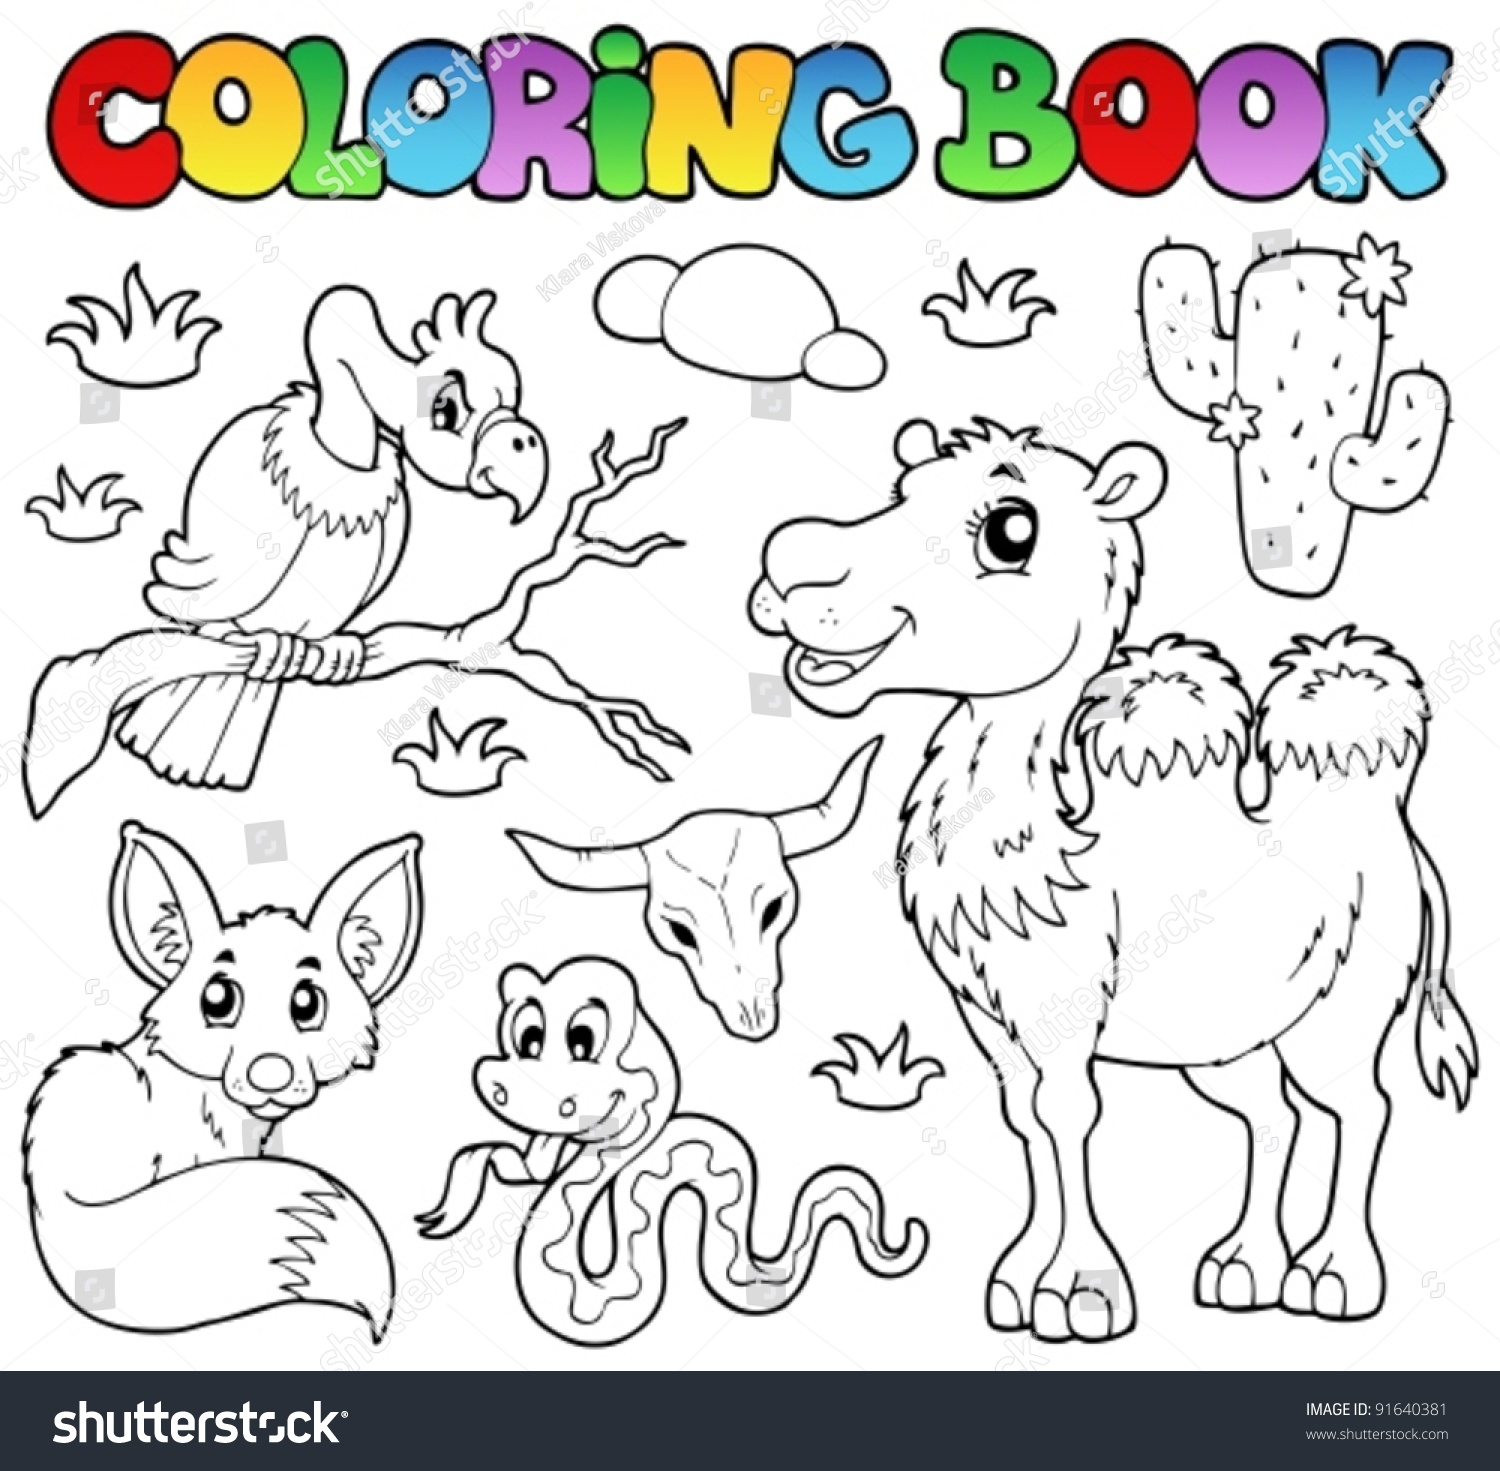 coloring book desert animals 1 vector illustration - Coloring Book Animals